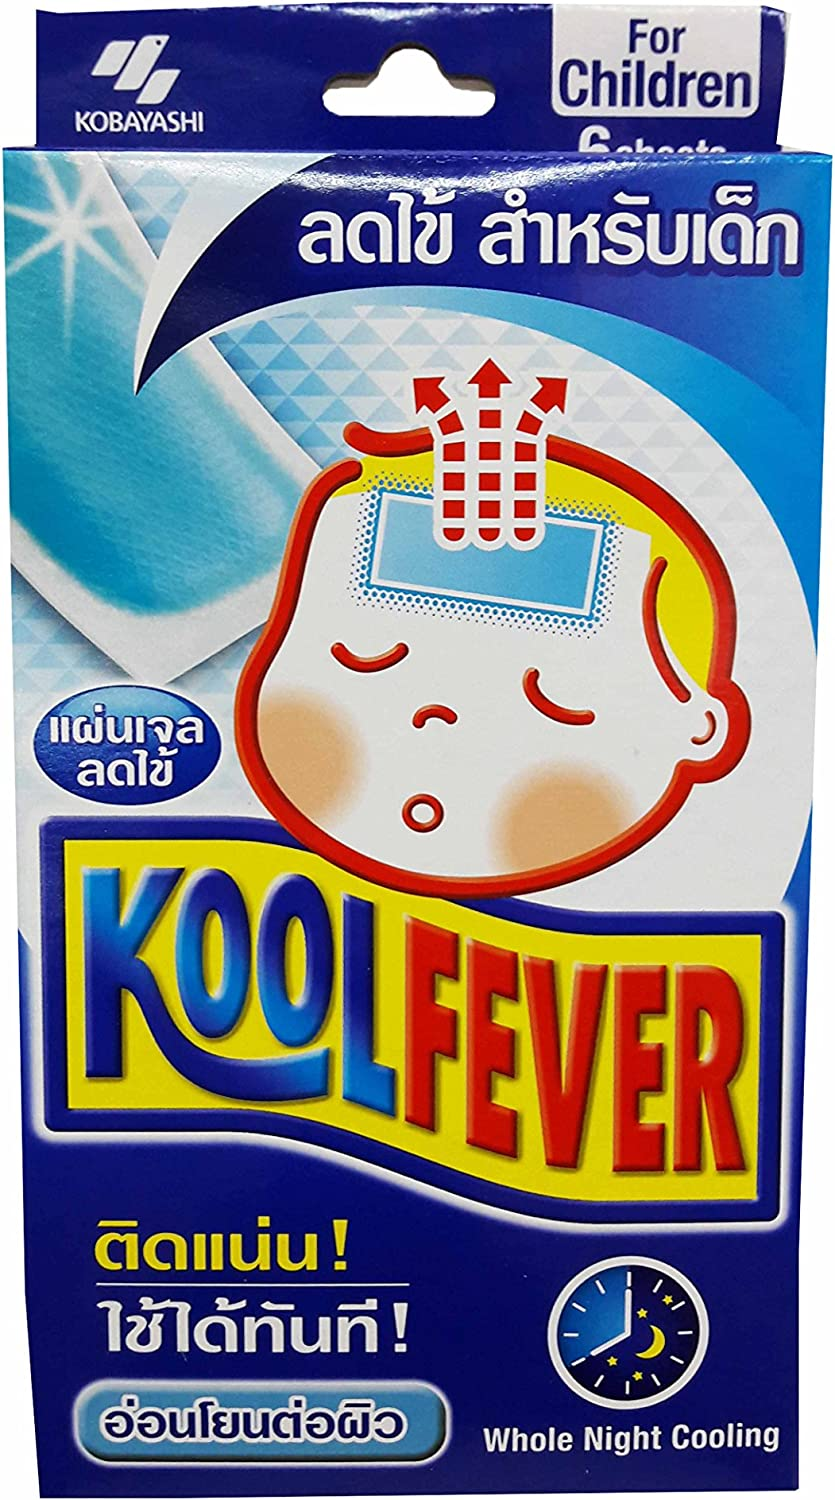 2 Boxes of Koolfever, Reduce Fever Cooling Gel Pads for Children, Whole Night Cooling. (1 Box X 6 Sheets) (Size of 50 Mm X 110 Mm)